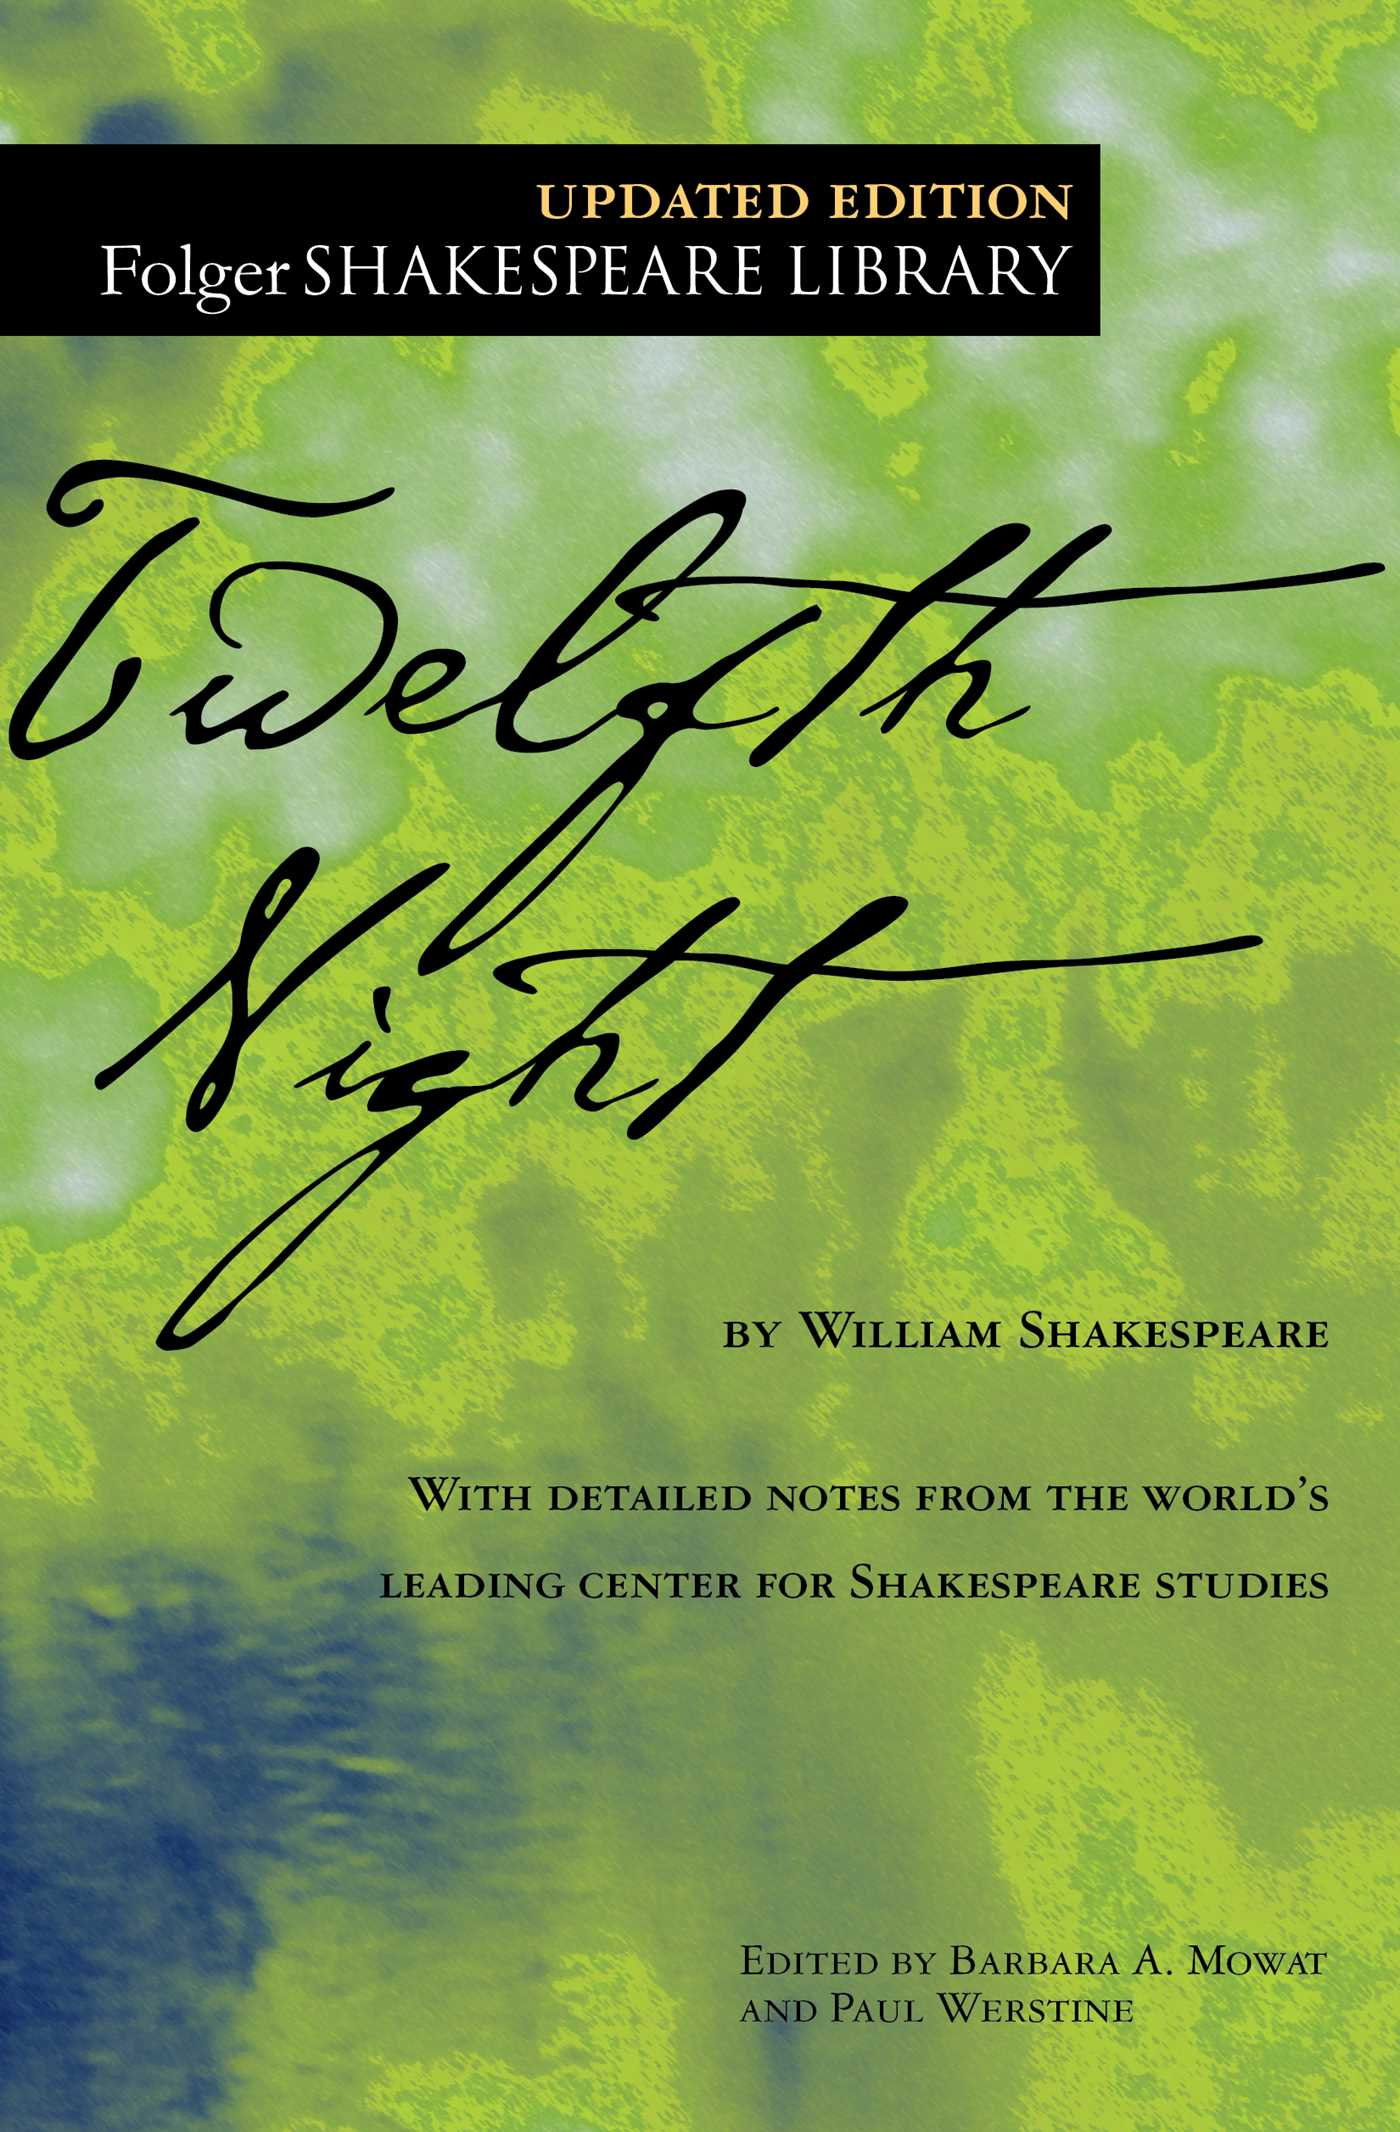 Twelfth Night | Book by William Shakespeare, Dr. Barbara A. Mowat, Paul  Werstine | Official Publisher Page | Simon & Schuster